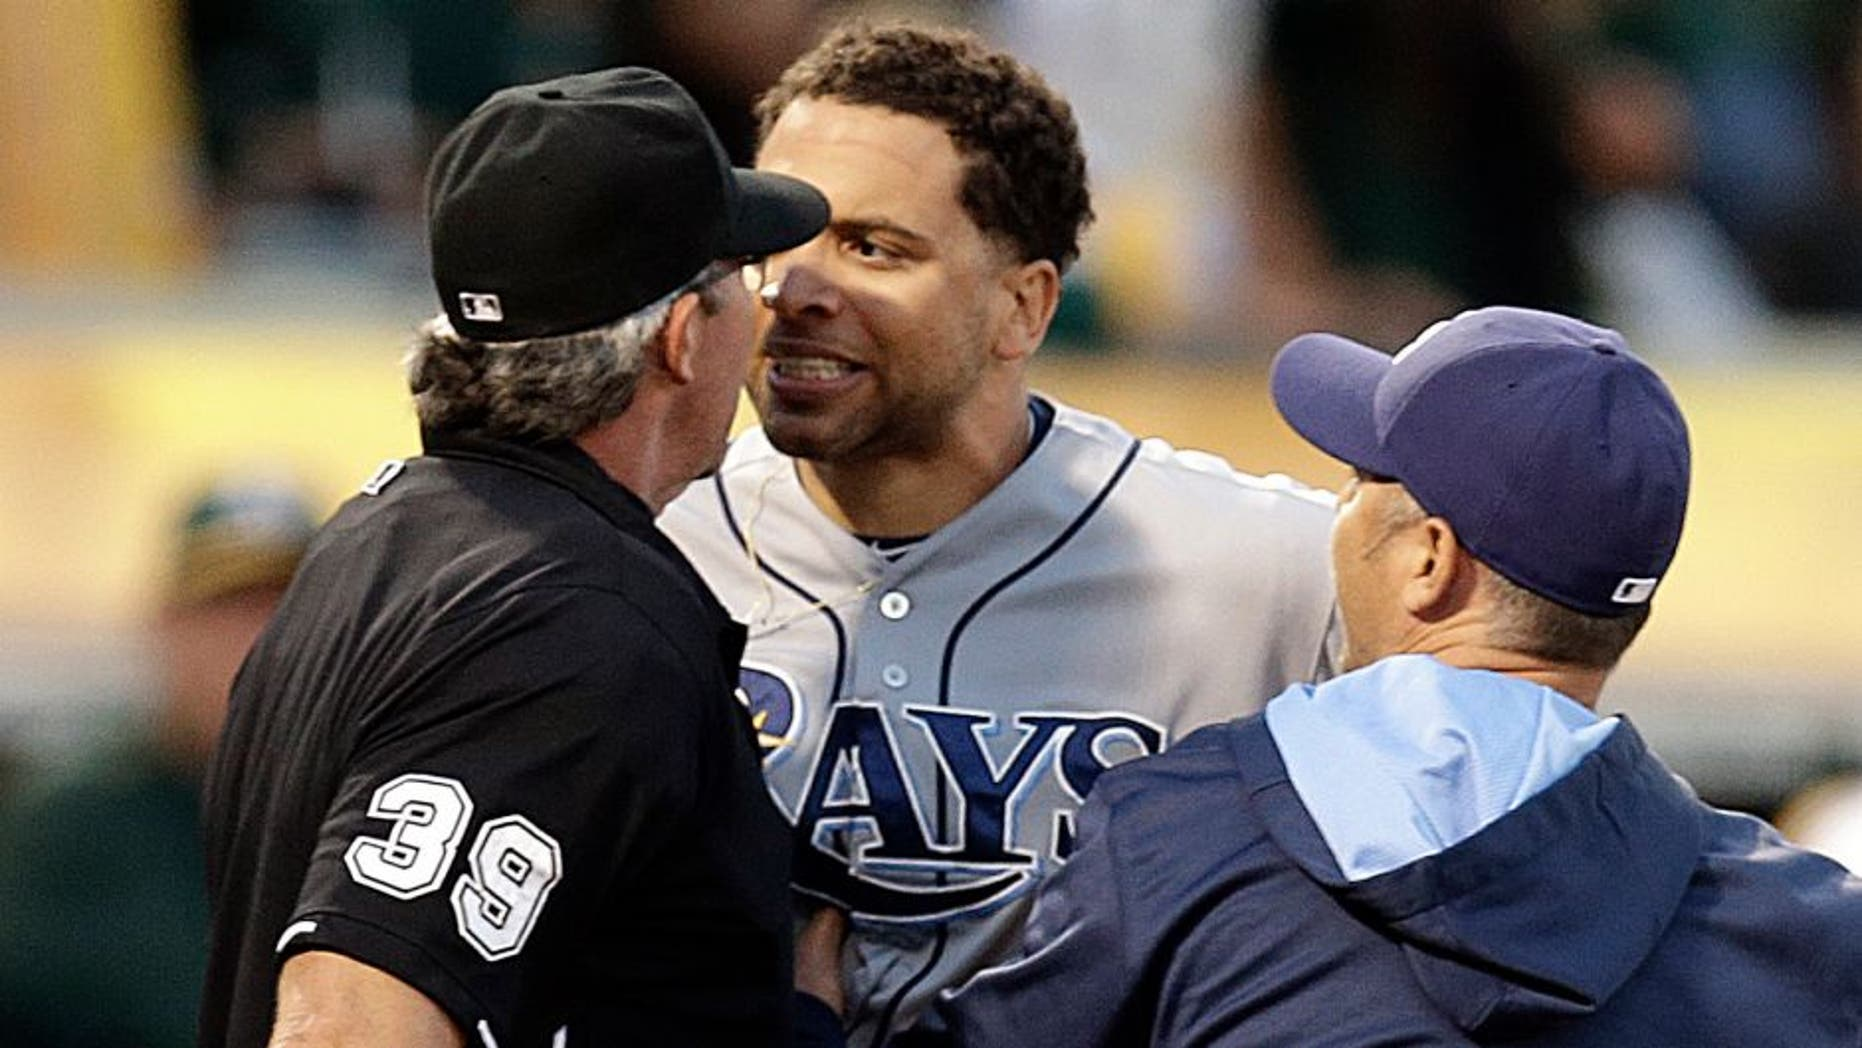 Tampa Bay Rays' James Loney, center, is restrained by manager Kevin Cash, right, while arguing with home plate umpire Paul Nauert (39) after being ejected in the sixth inning of a baseball game against the Oakland Athletics, Saturday, Aug. 22, 2015, in Oakland, Calif. (AP Photo/Ben Margot)